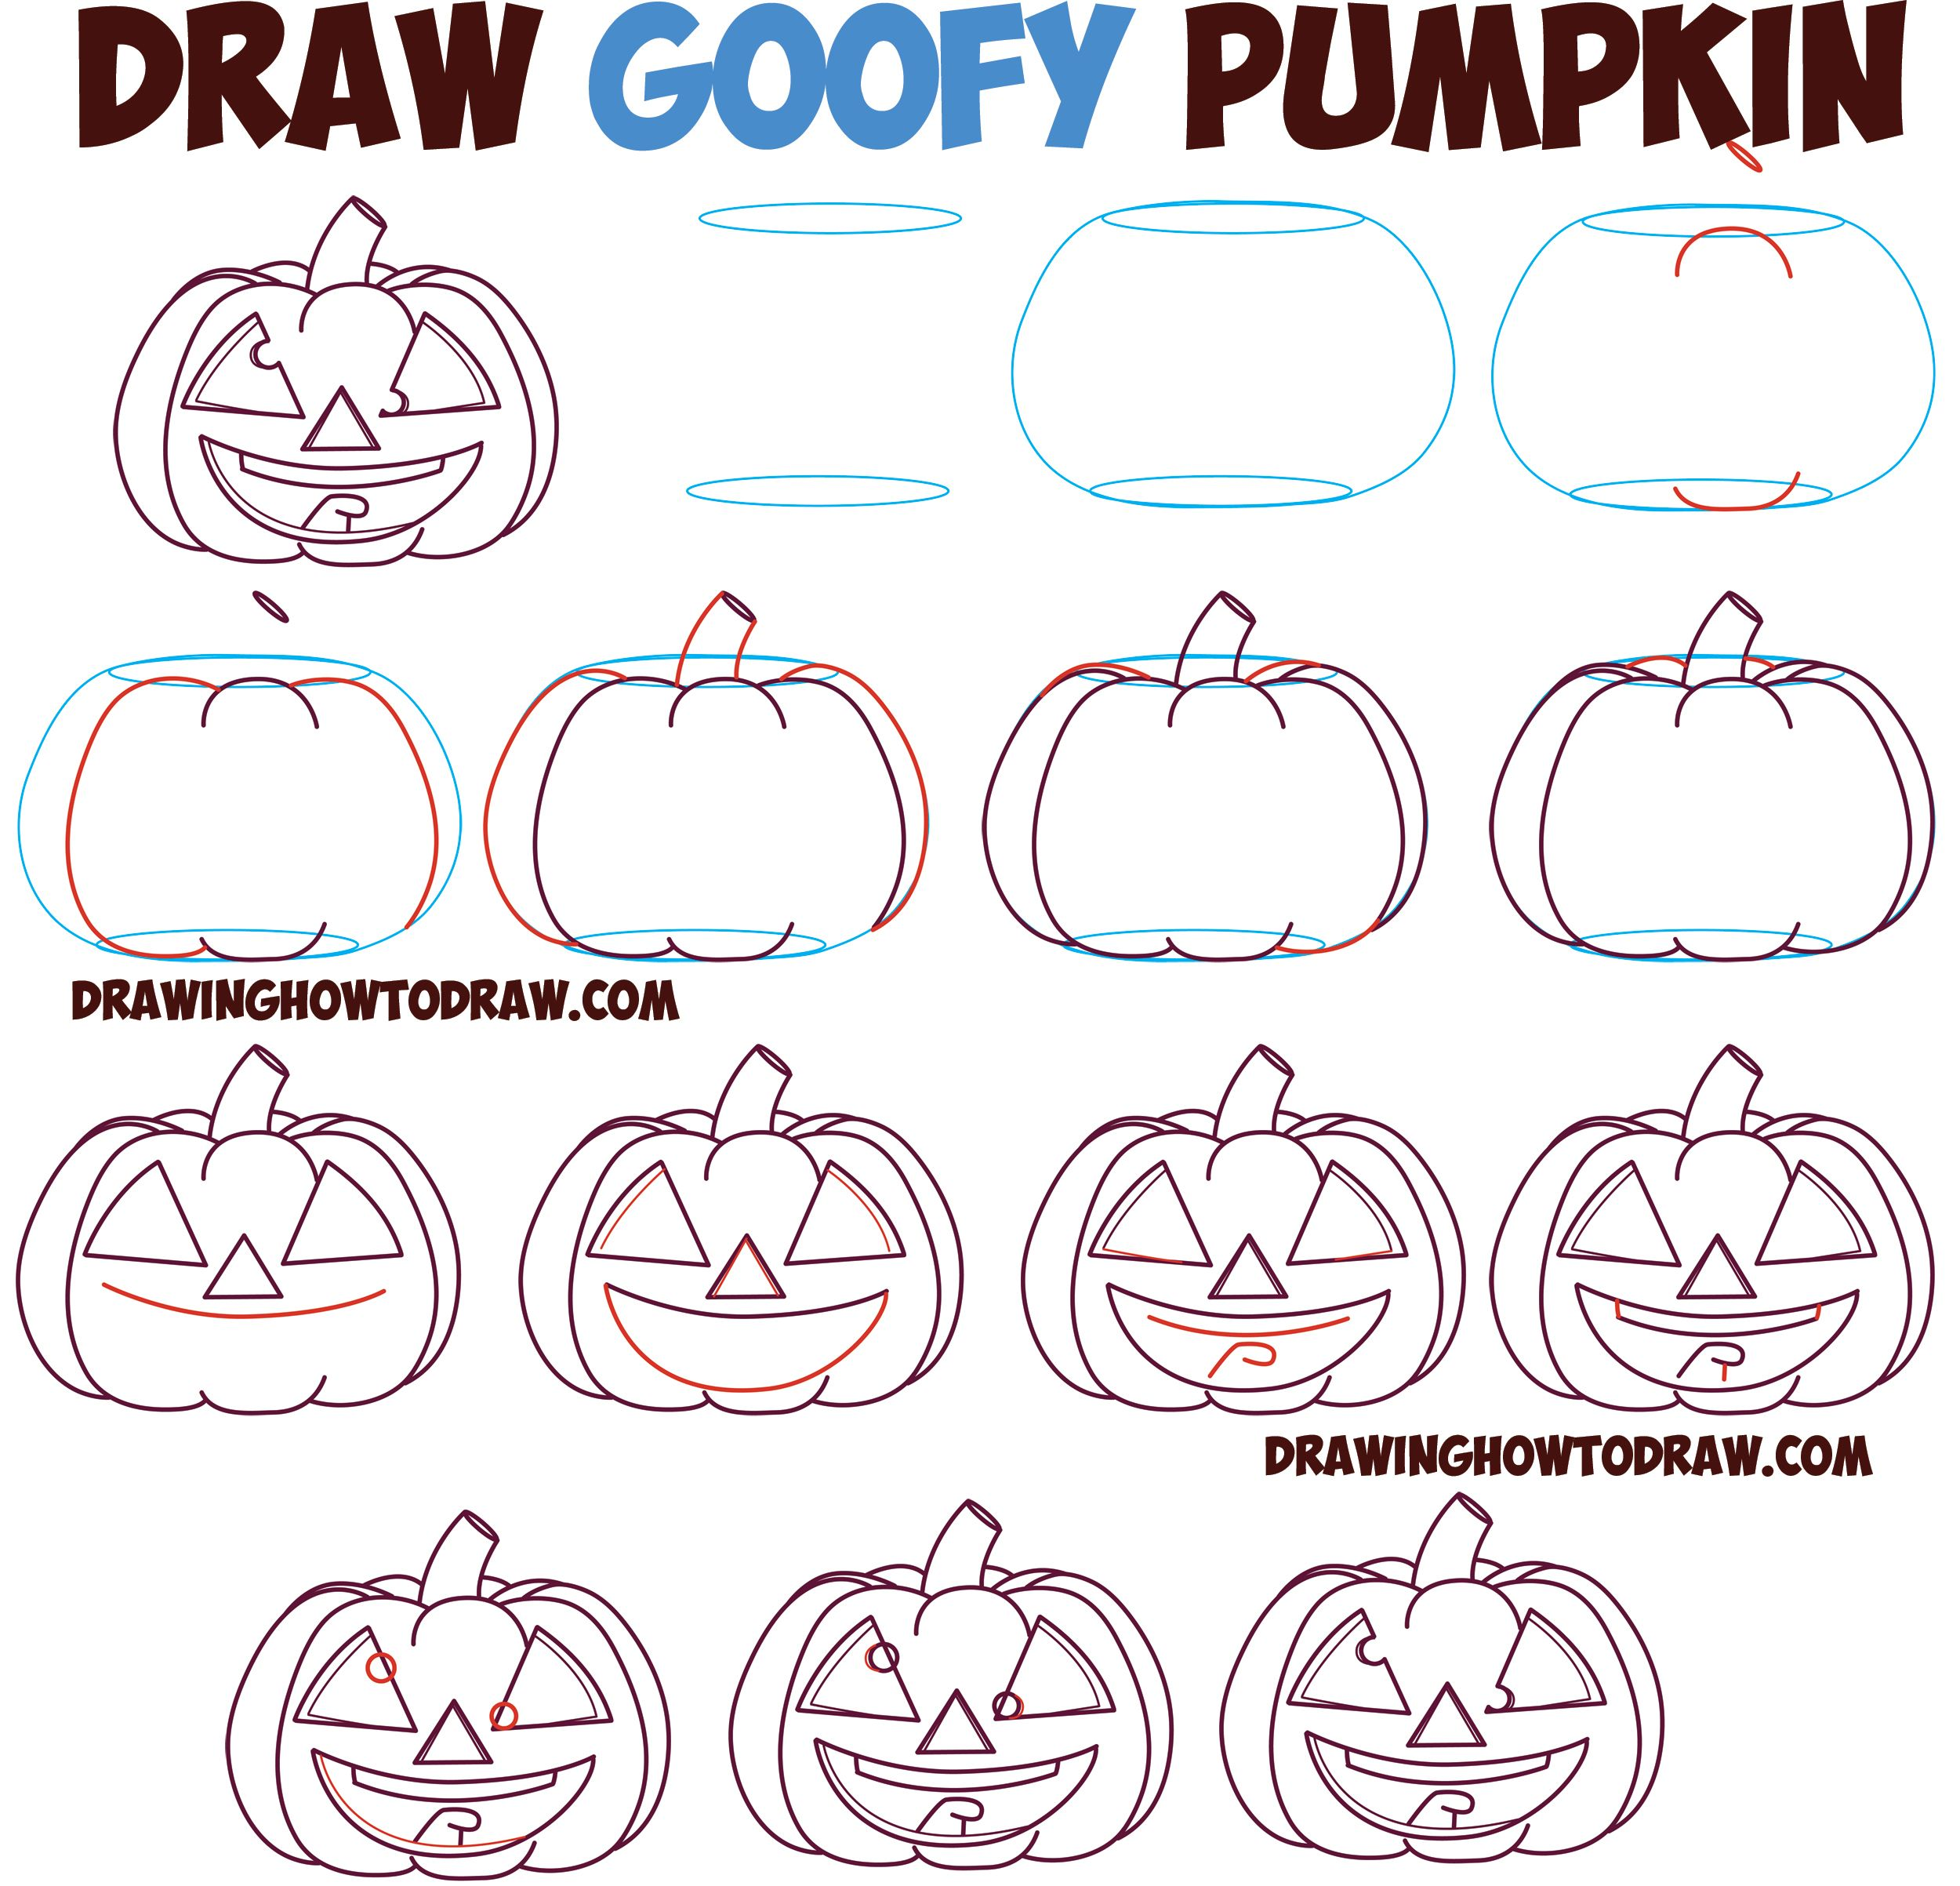 Huge Guide To Drawing Cartoon Pumpkin Faces Jack O Lantern Faces Expressions Emotions Easy Step By Step Drawing Tutorial For Kids On Halloween Drawing Tutorials For Kids Anime Drawing